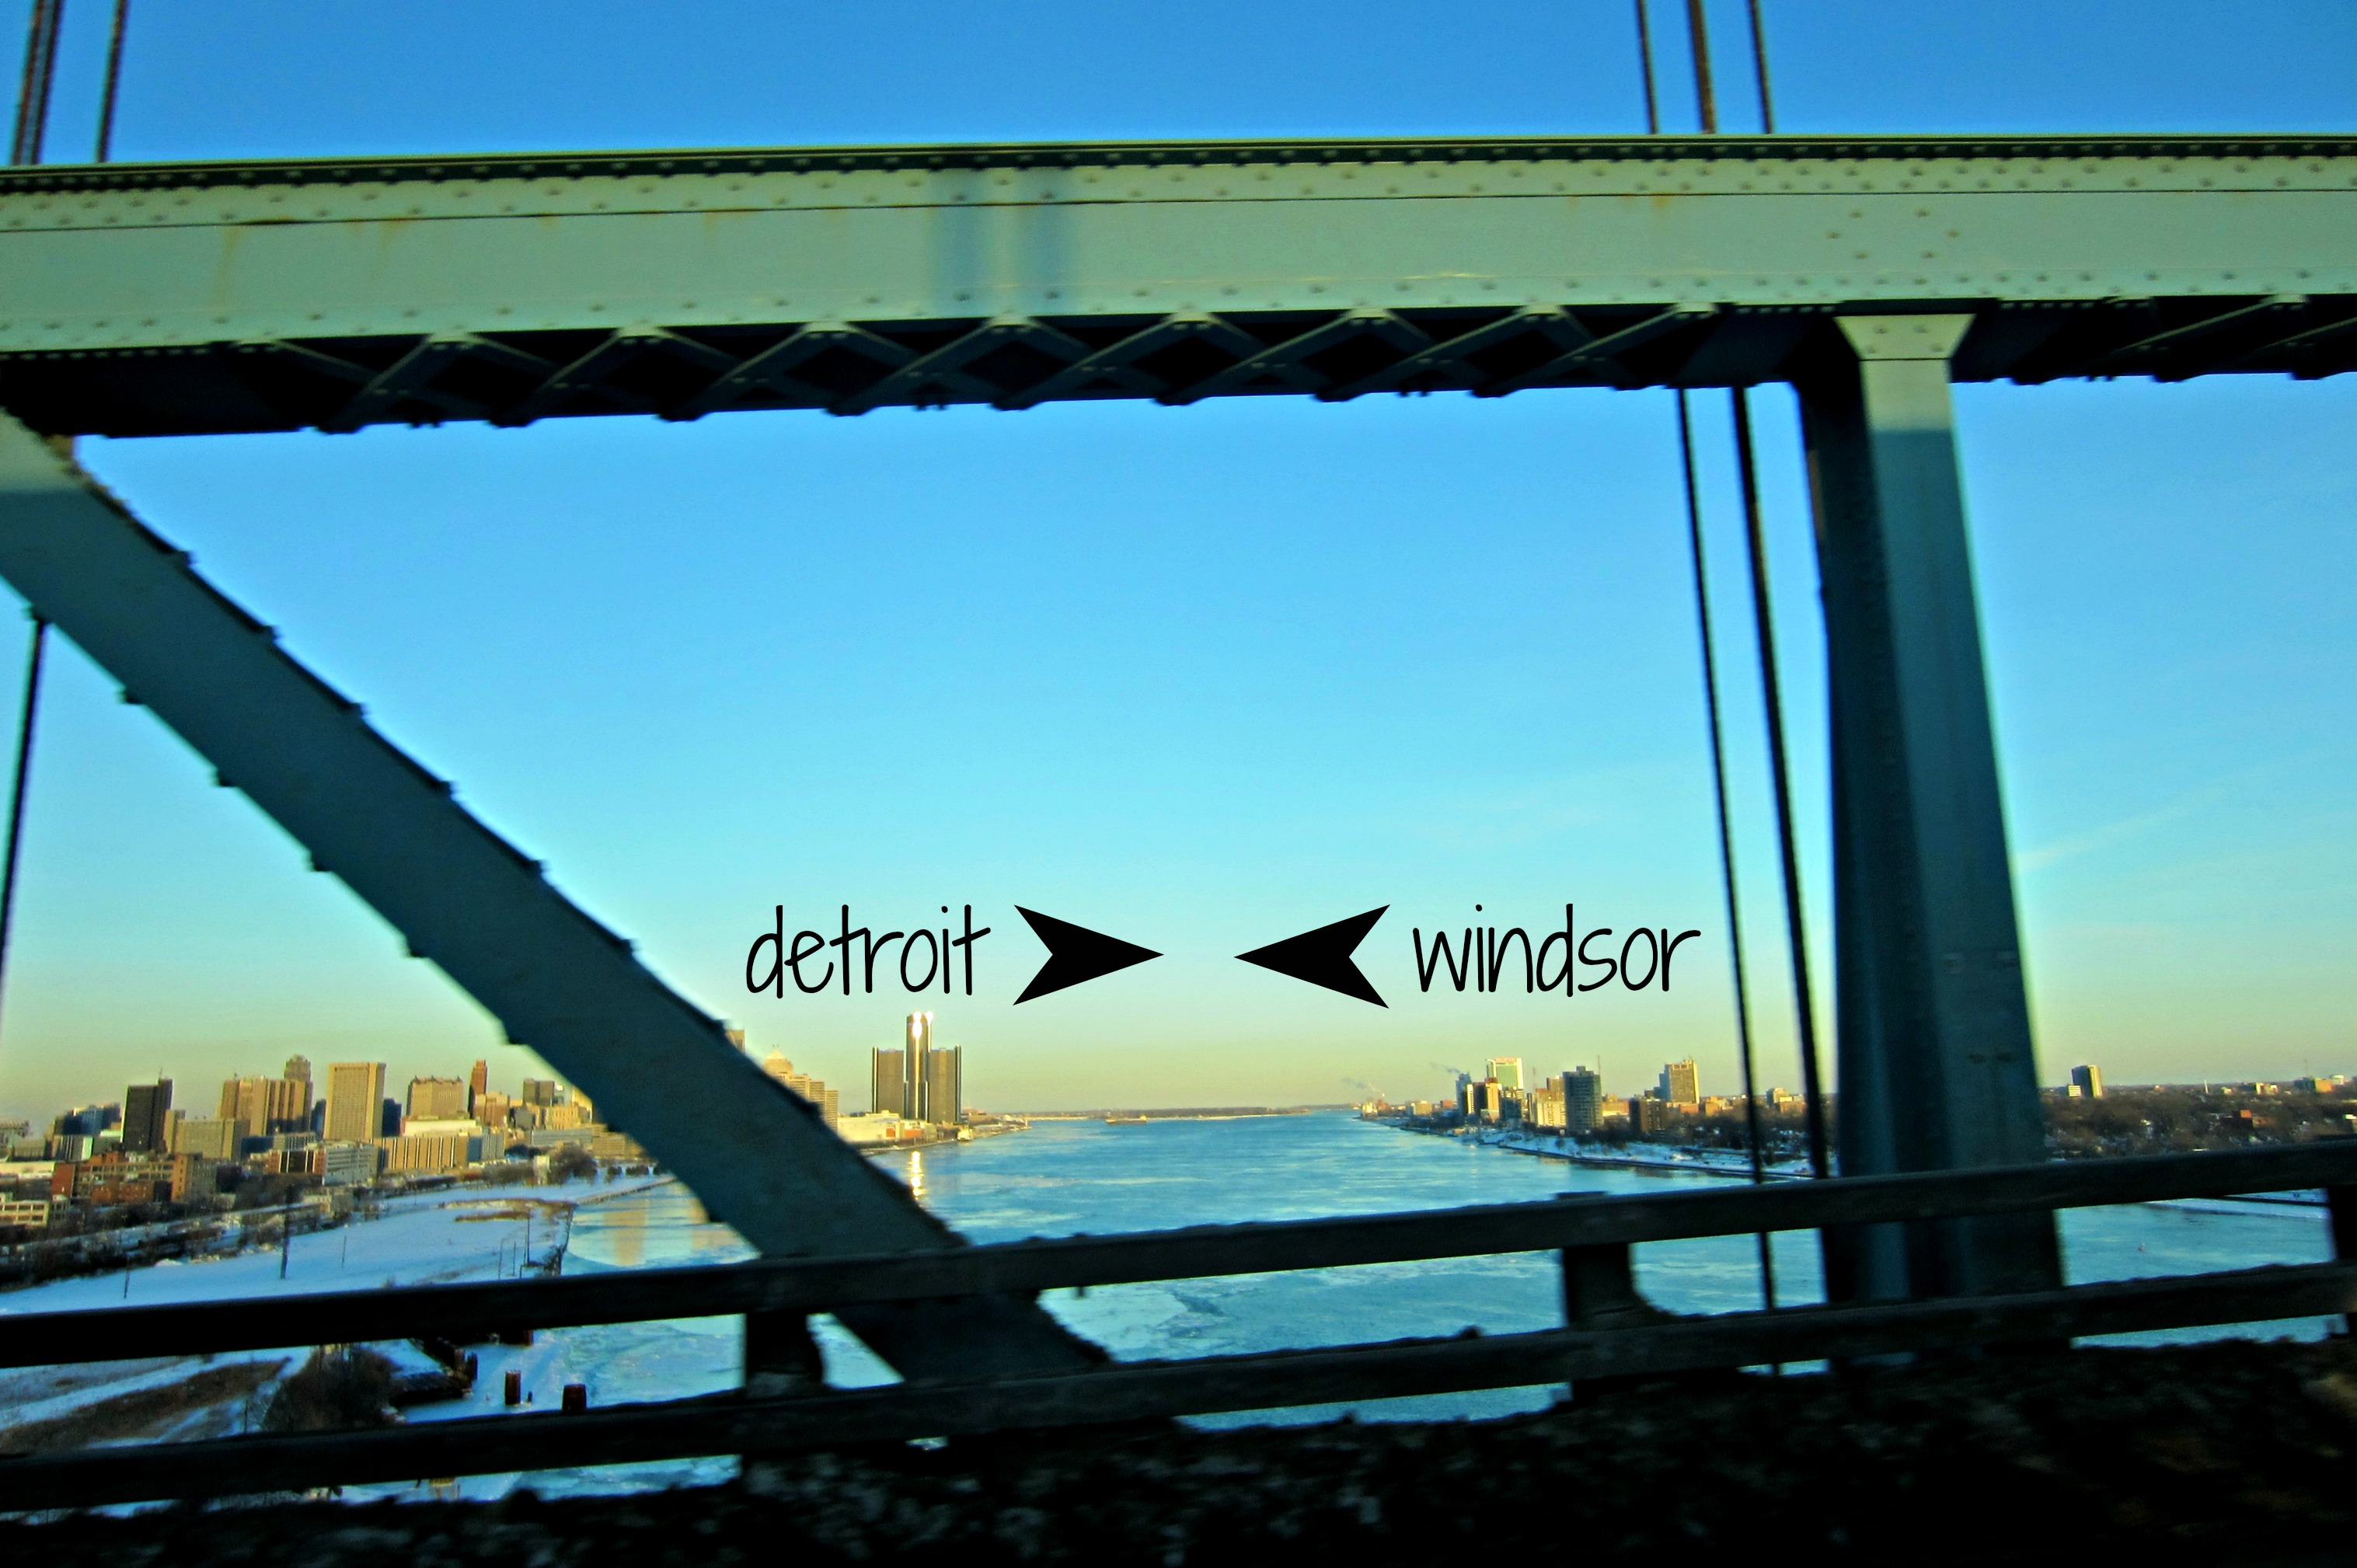 detroit to windsor on ambassador bridge